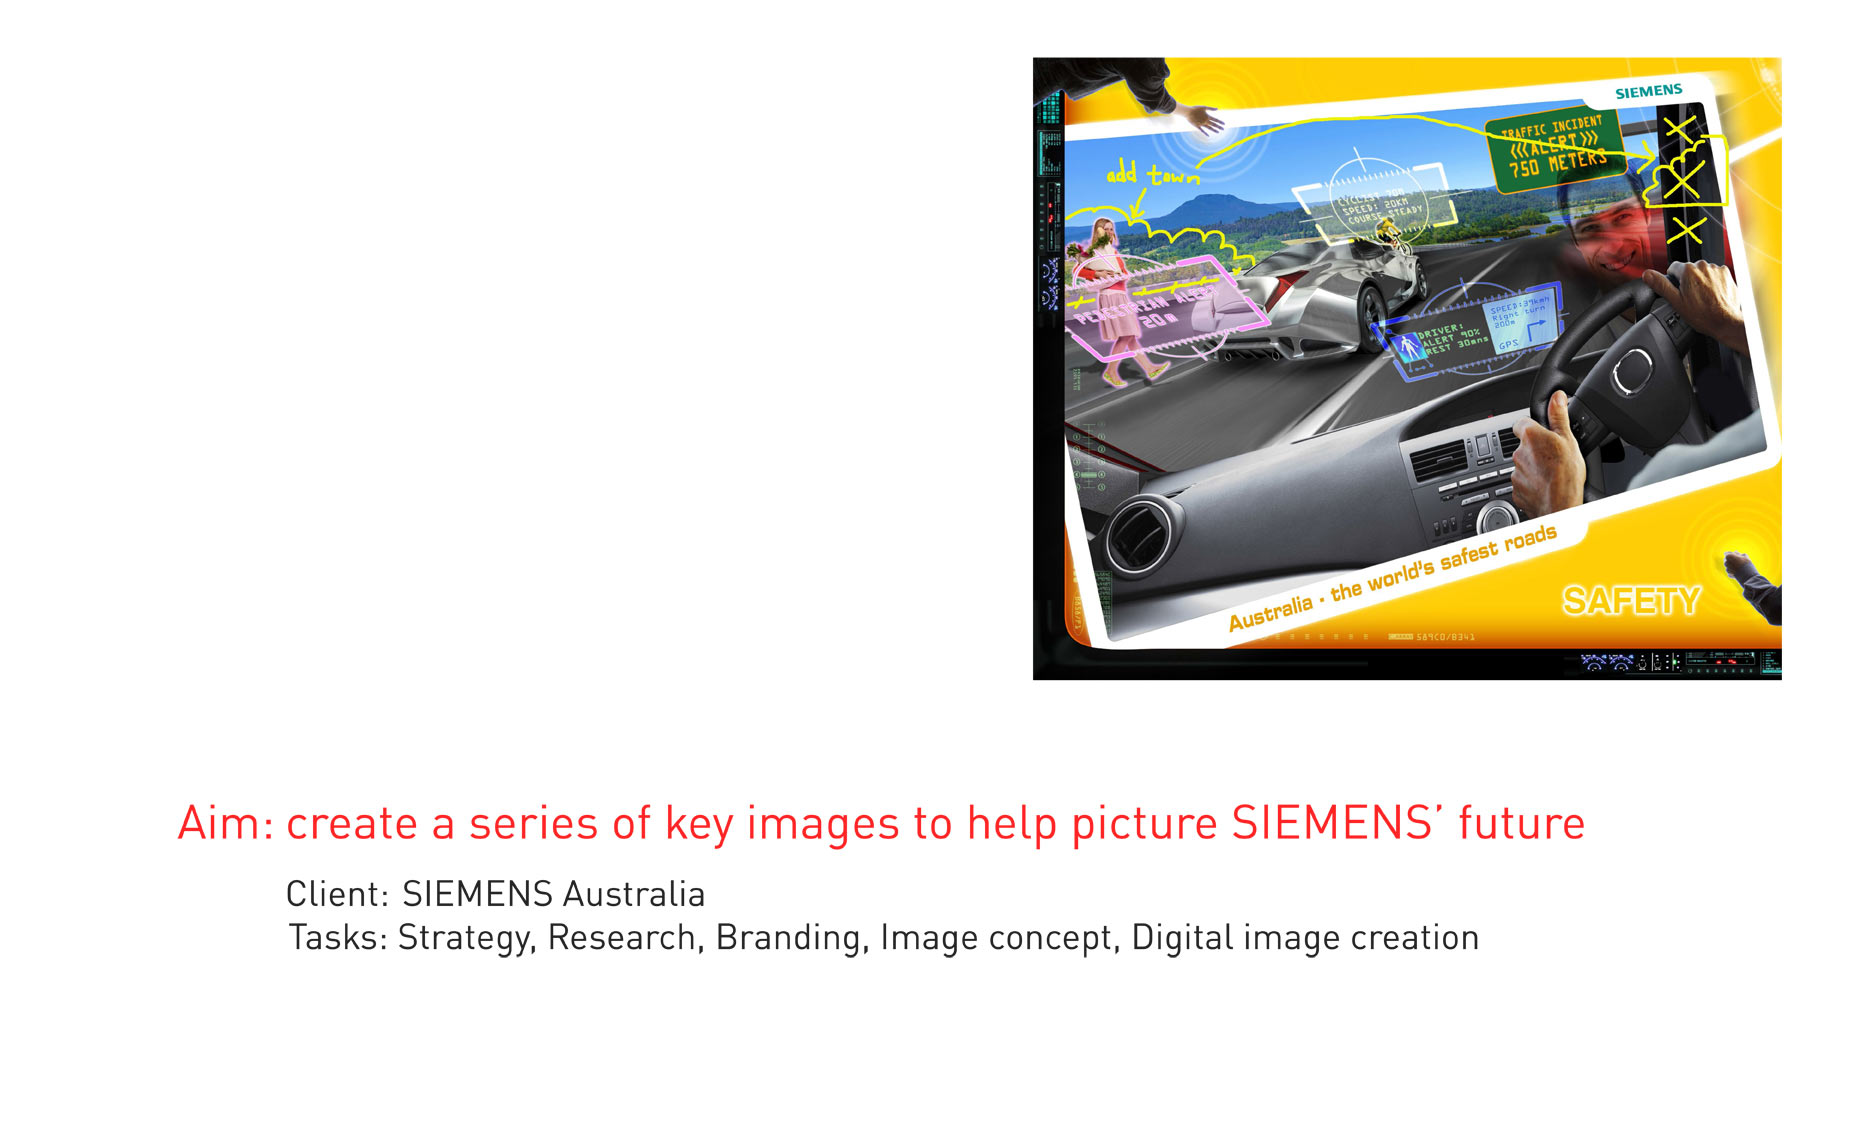 Siemens Picture the Future communication design photoshop expert